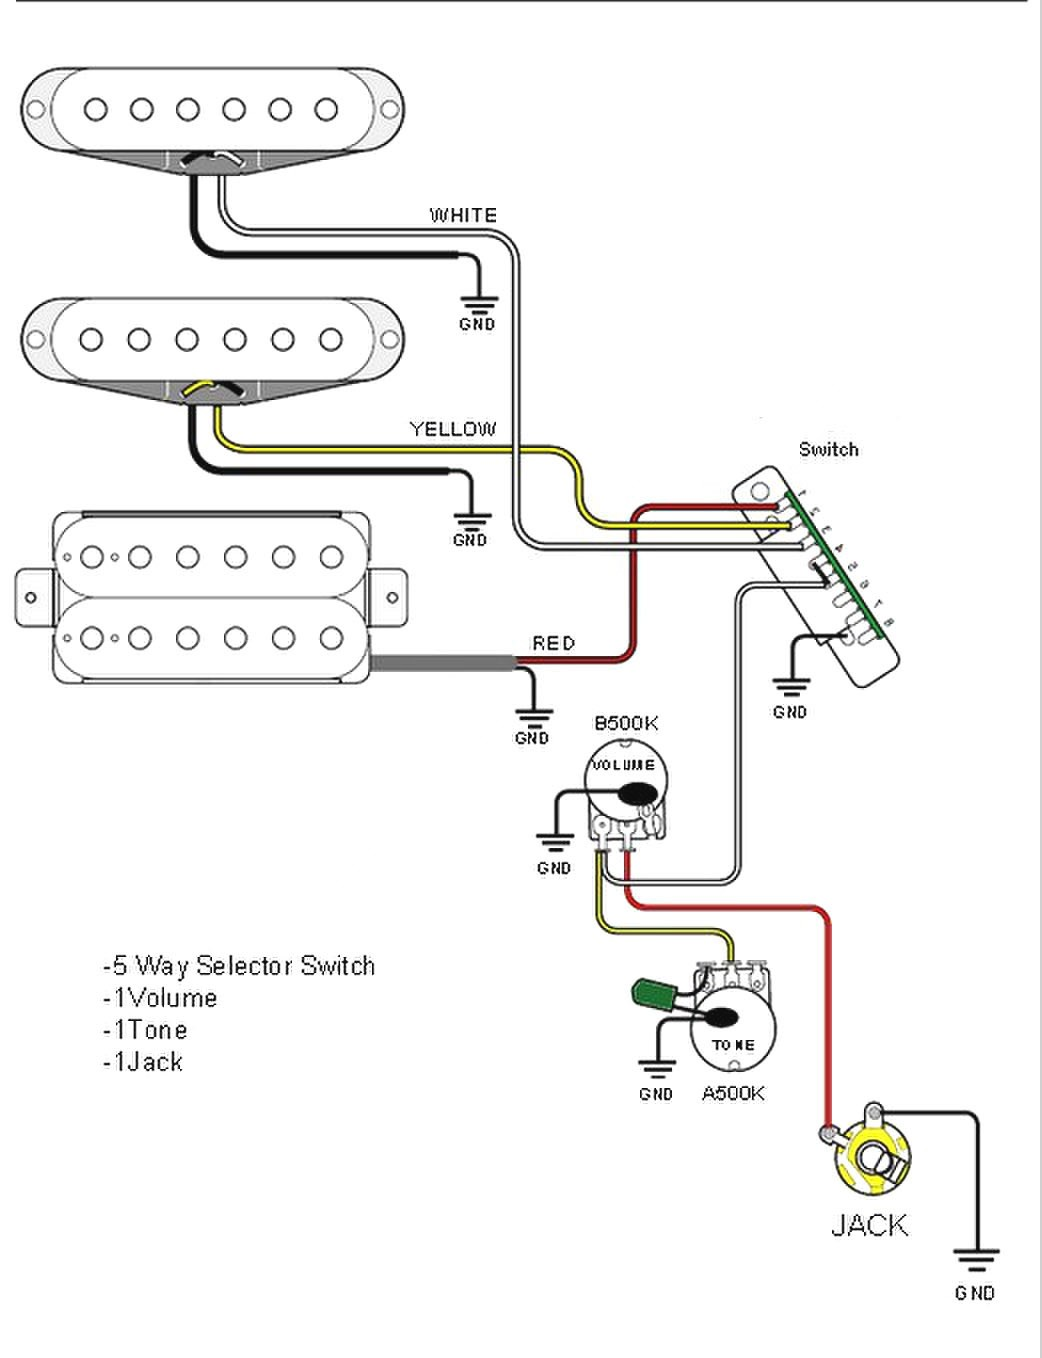 [SCHEMATICS_4JK]  721 1985 Fender Stratocaster Wiring Diagram | Wiring Library | Fender Noiseless Pickups For Stratocaster Wiring Diagram |  | Wiring Library